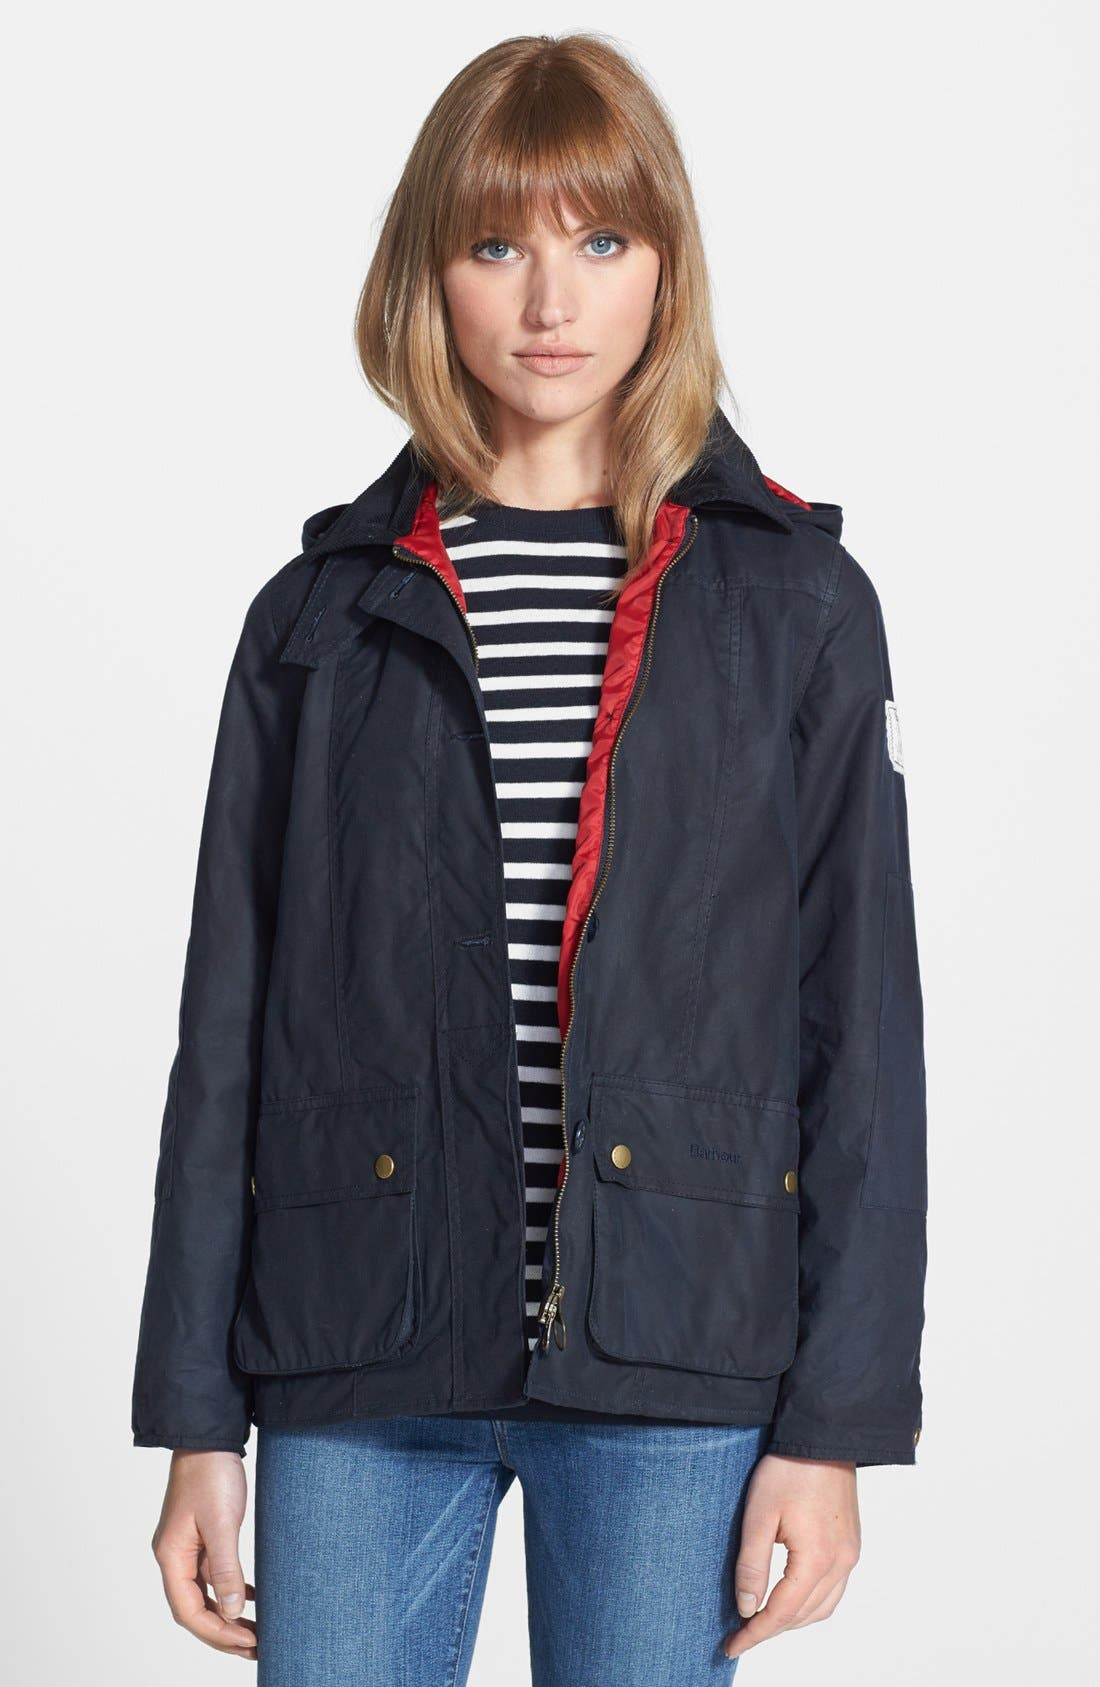 Alternate Image 1 Selected - Barbour 'Shore' Hooded Waxed Cotton Marine Jacket